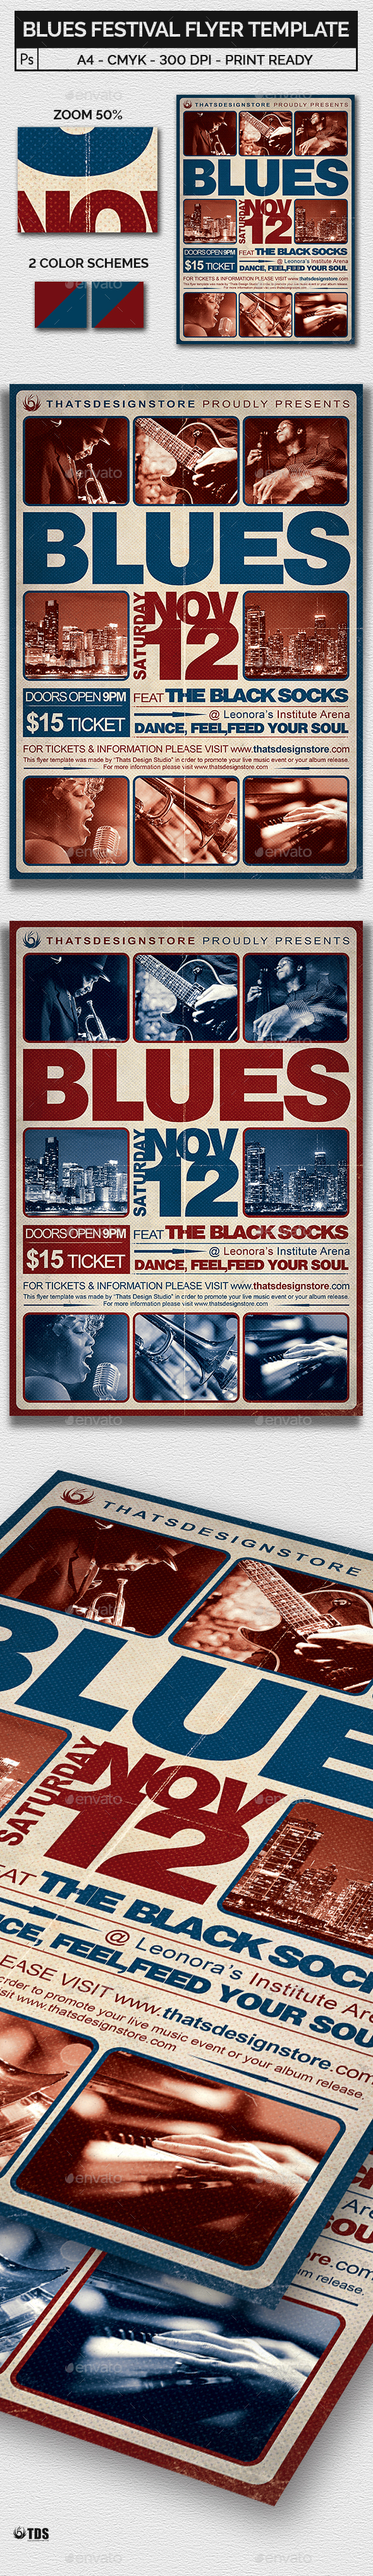 Blues Festival Flyer Template V2 - Concerts Events